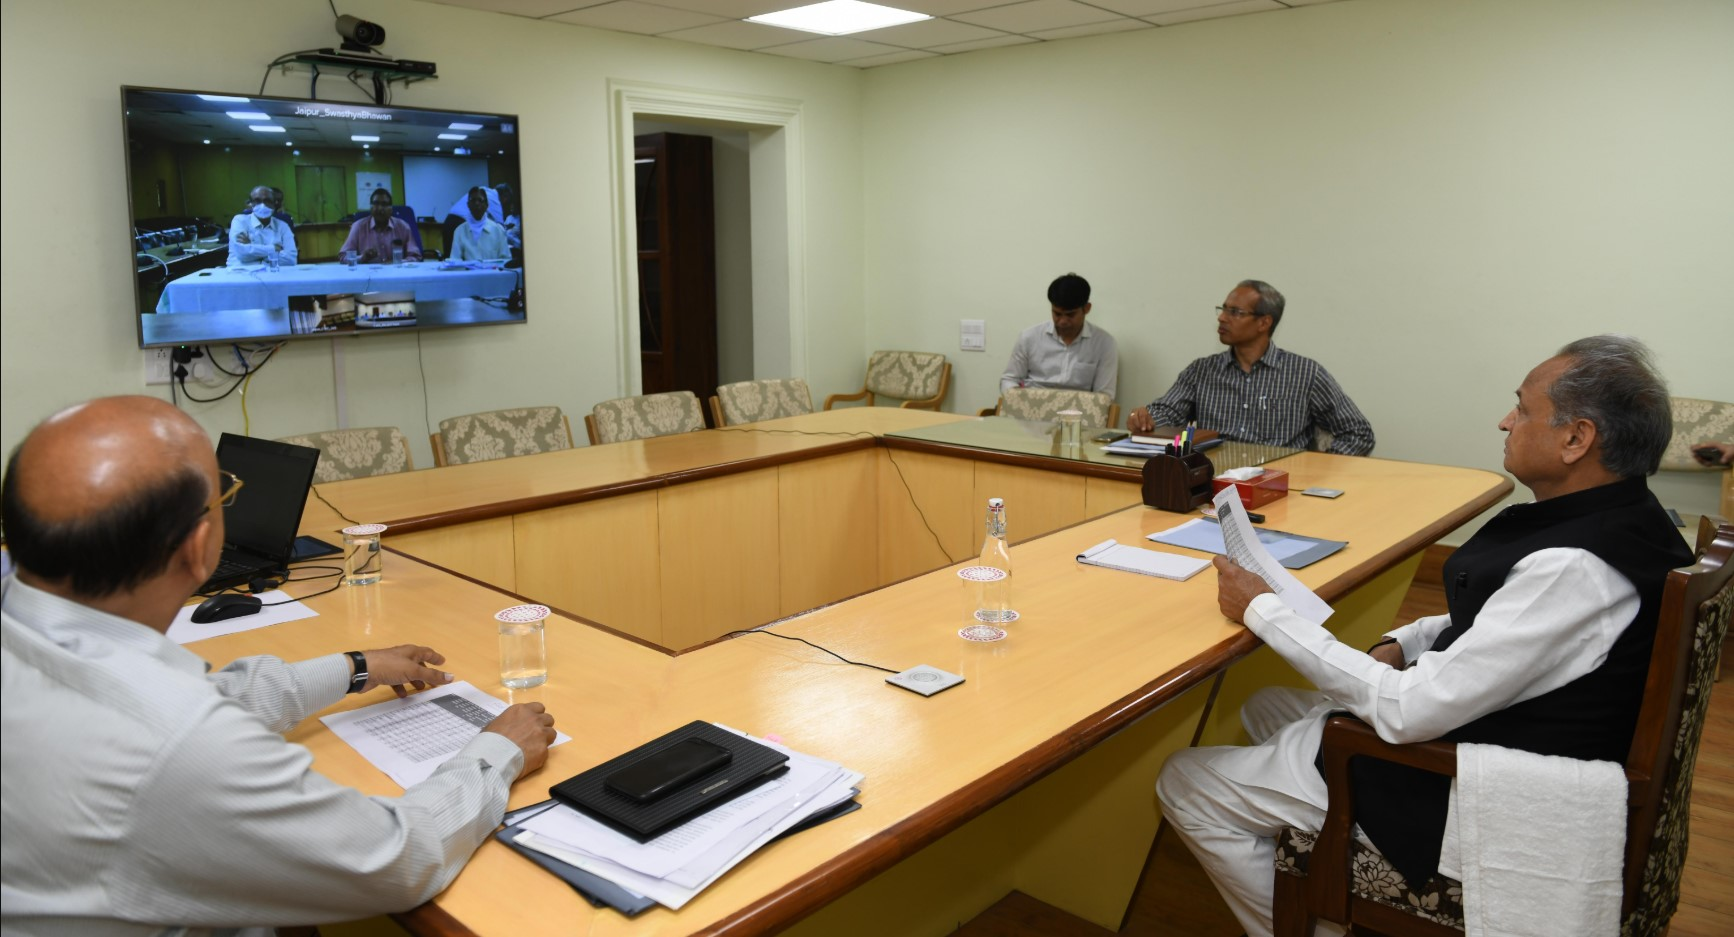 Video conferencing on Corona arrange for adequate quantity of ventilators and test kit – CM 5